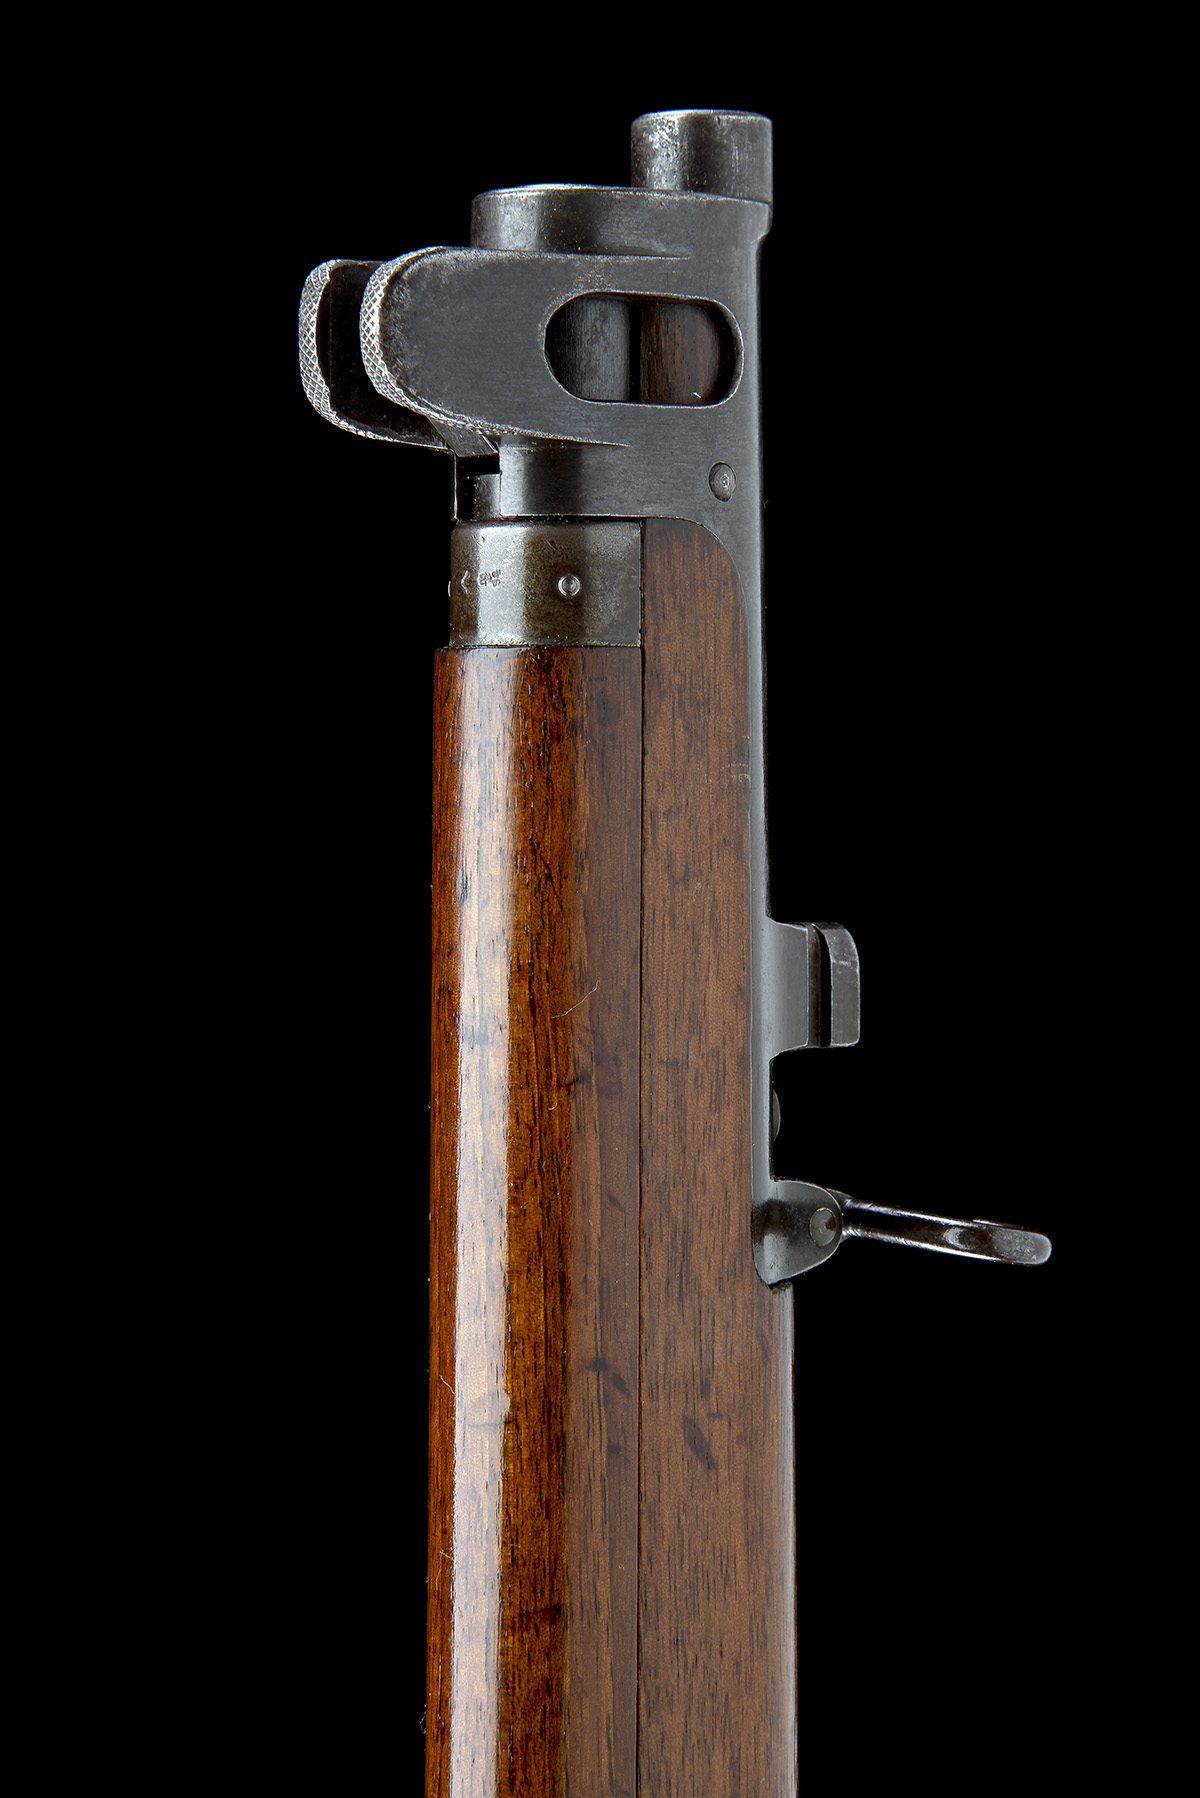 B.S.A. CO. SPARKBROOK A RARE .303 BOLT-ACTION REPEATING SERVICE-RIFLE, MODEL 'SHT L.E. MK 1*', - Image 7 of 11